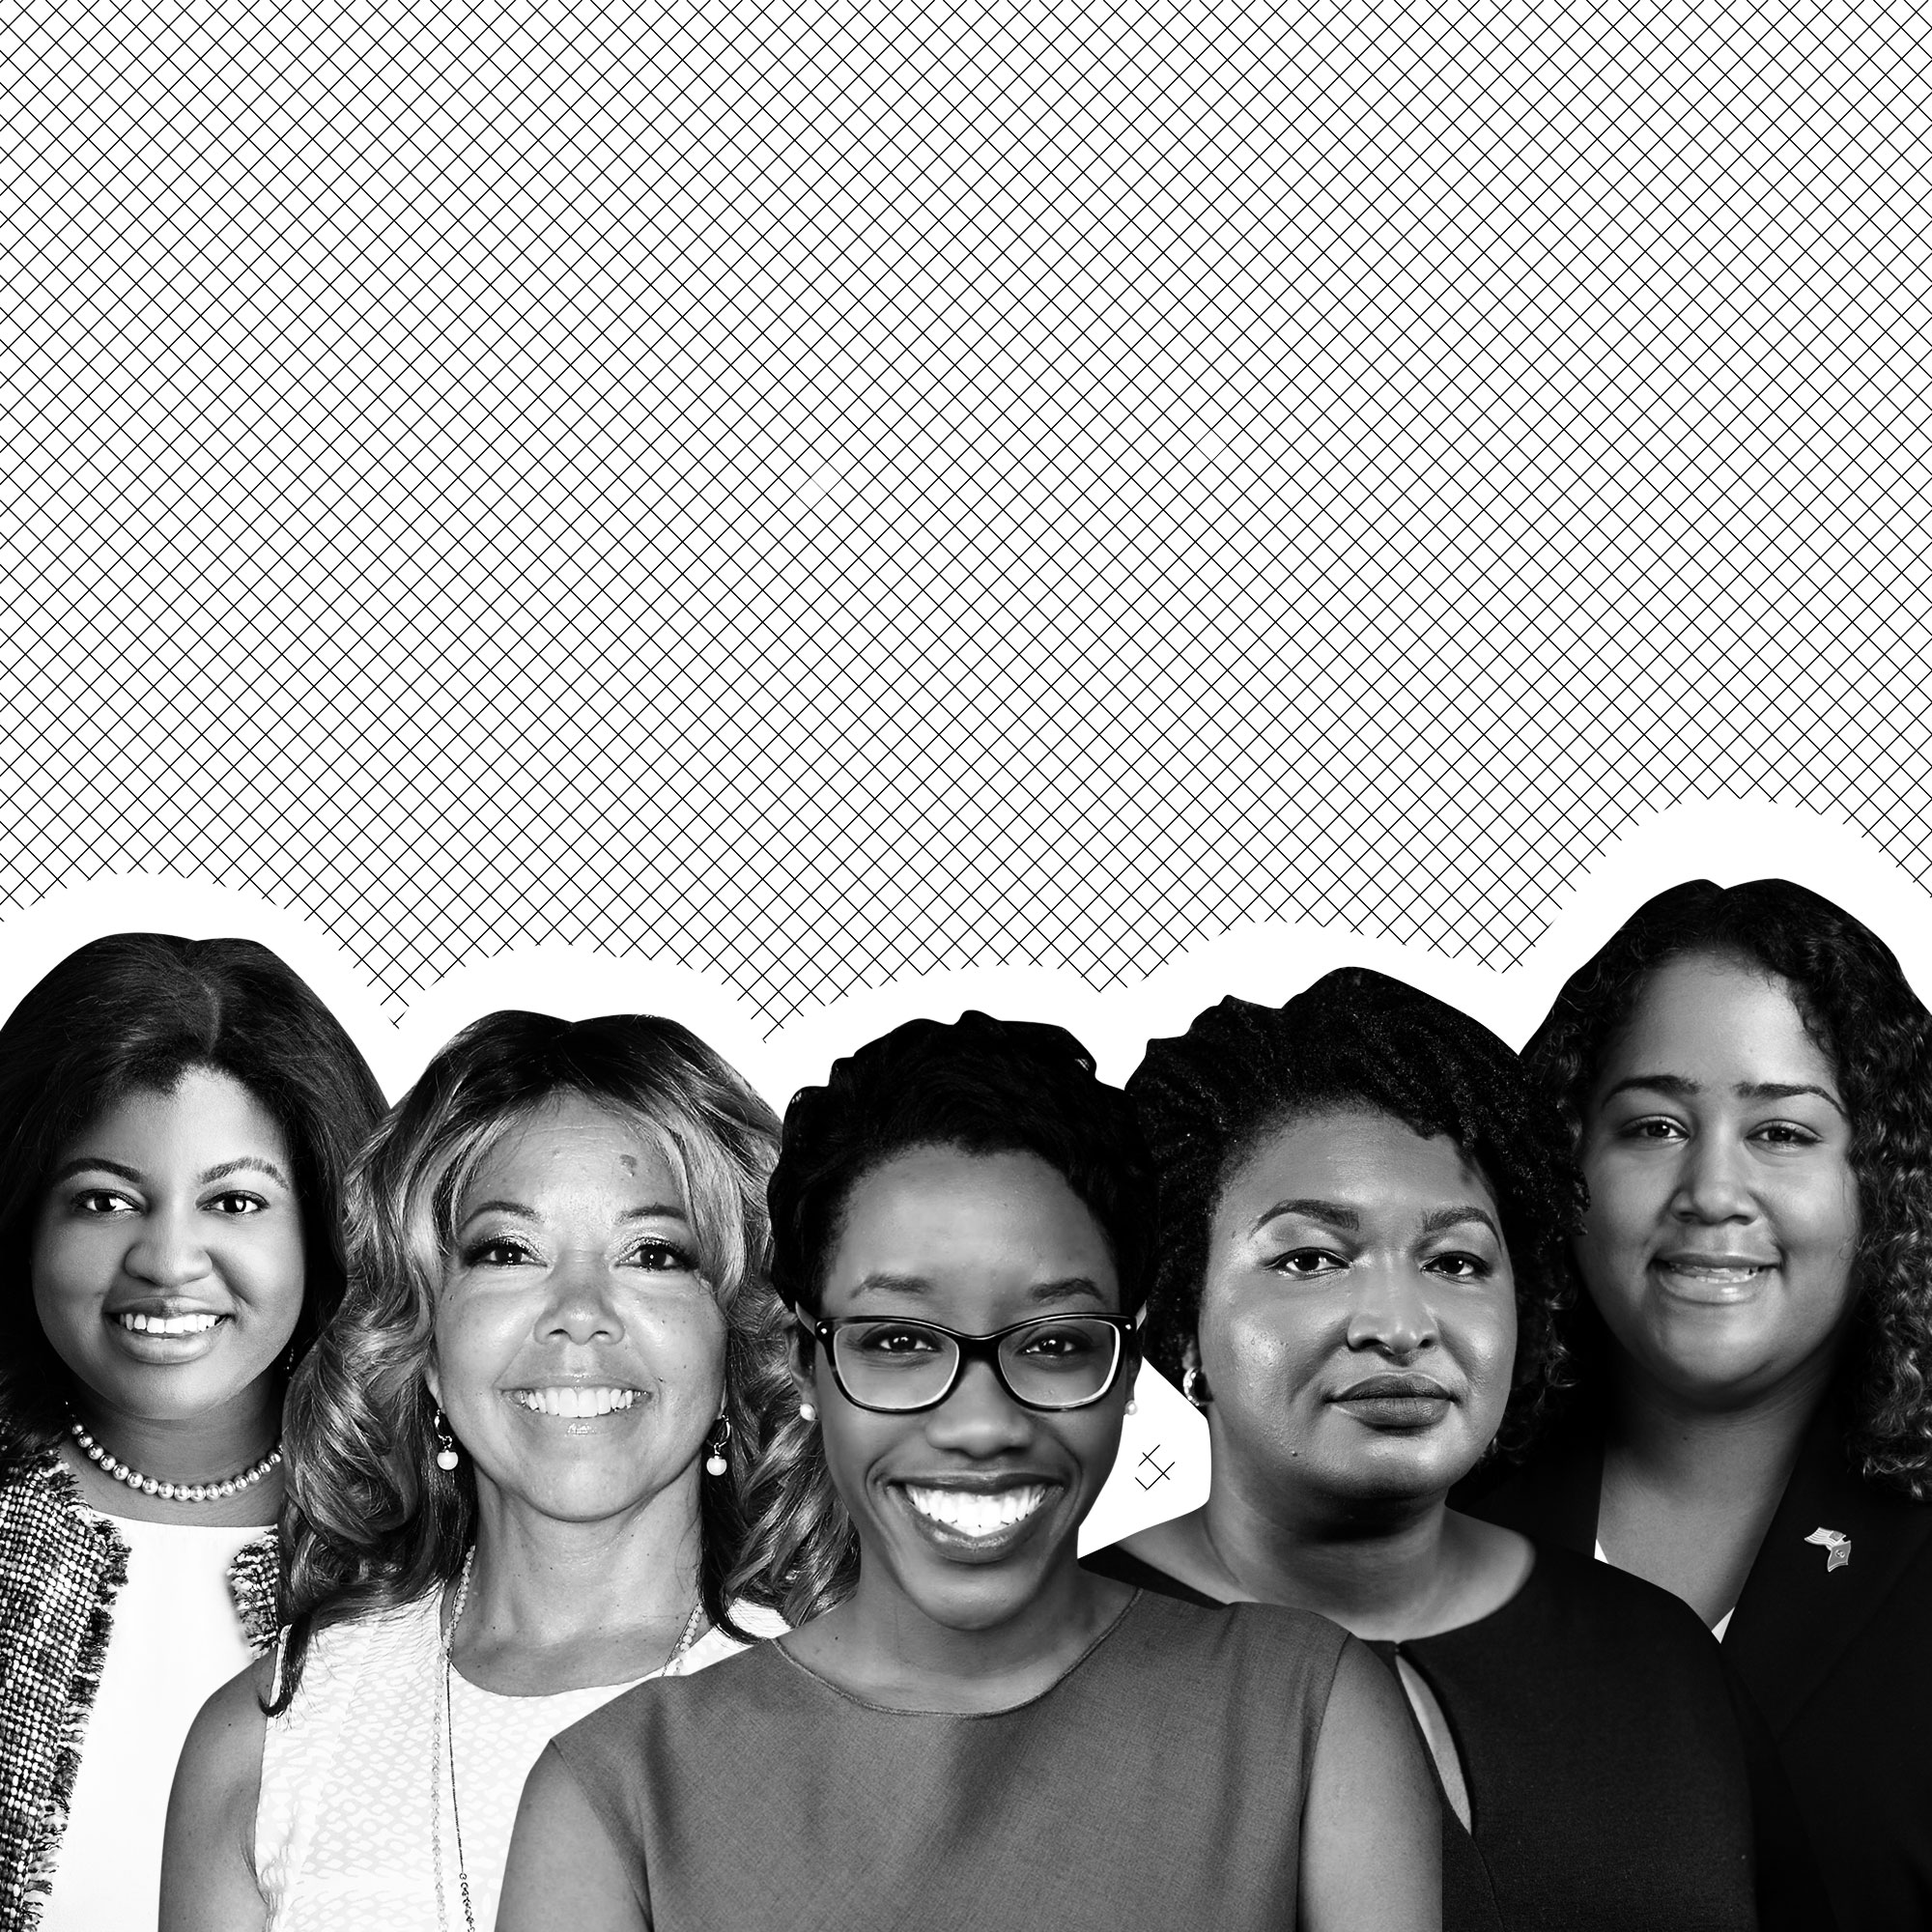 Over 400 Black Women Are Running in the Midterms. Meet 5 Who Could Help Make History.